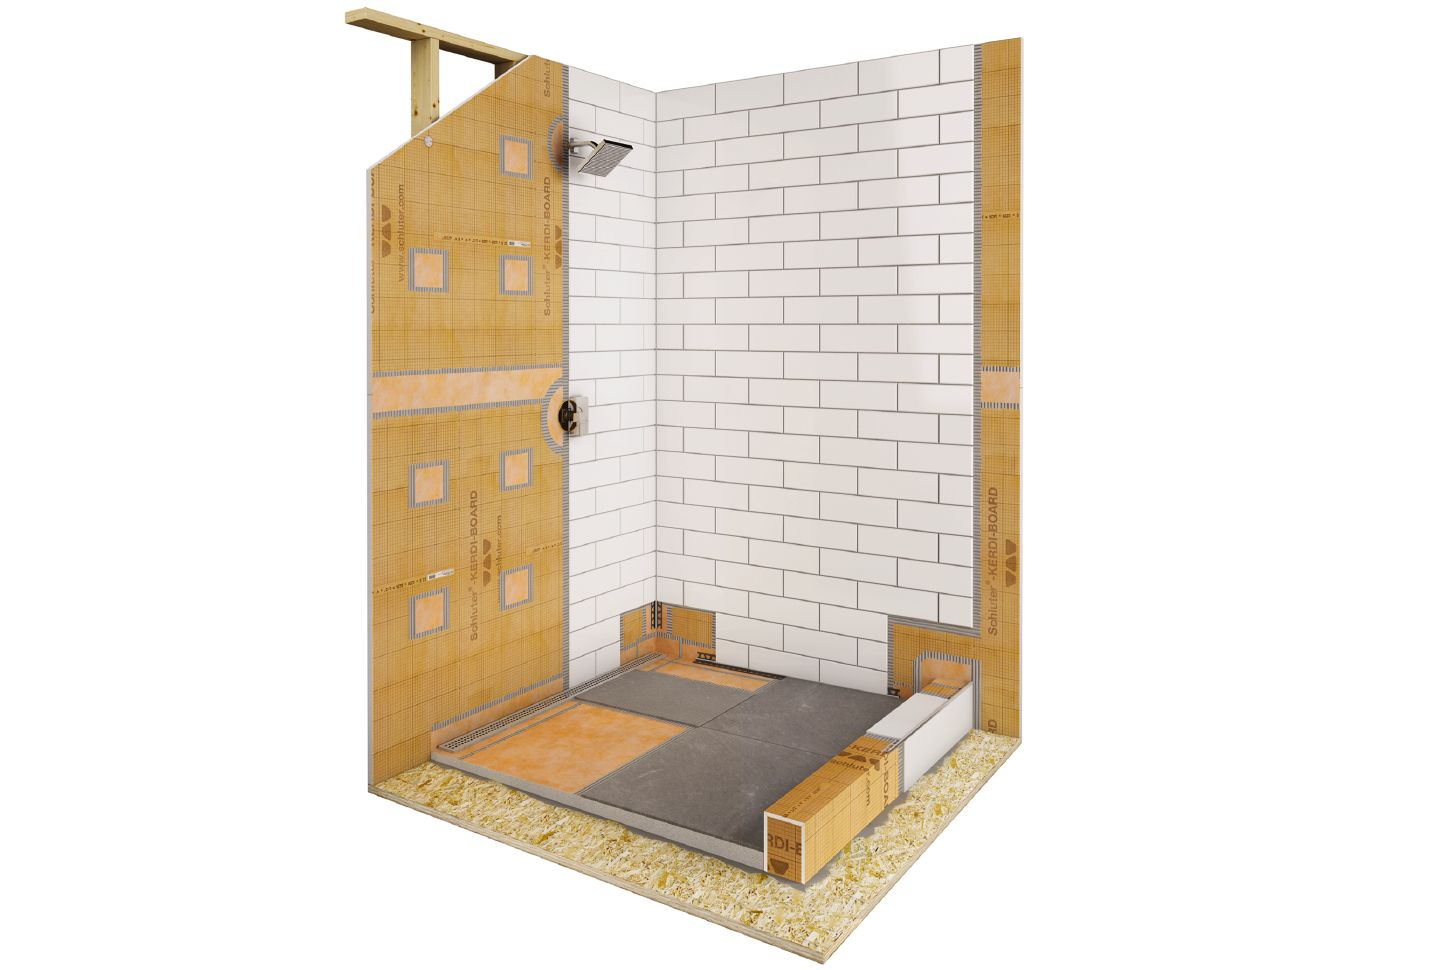 Both Of These Shower Assemblies Offer The Opportunity To Integrate The  KERDI LINE Linear Drain. Letu0027s Examine Both Options: